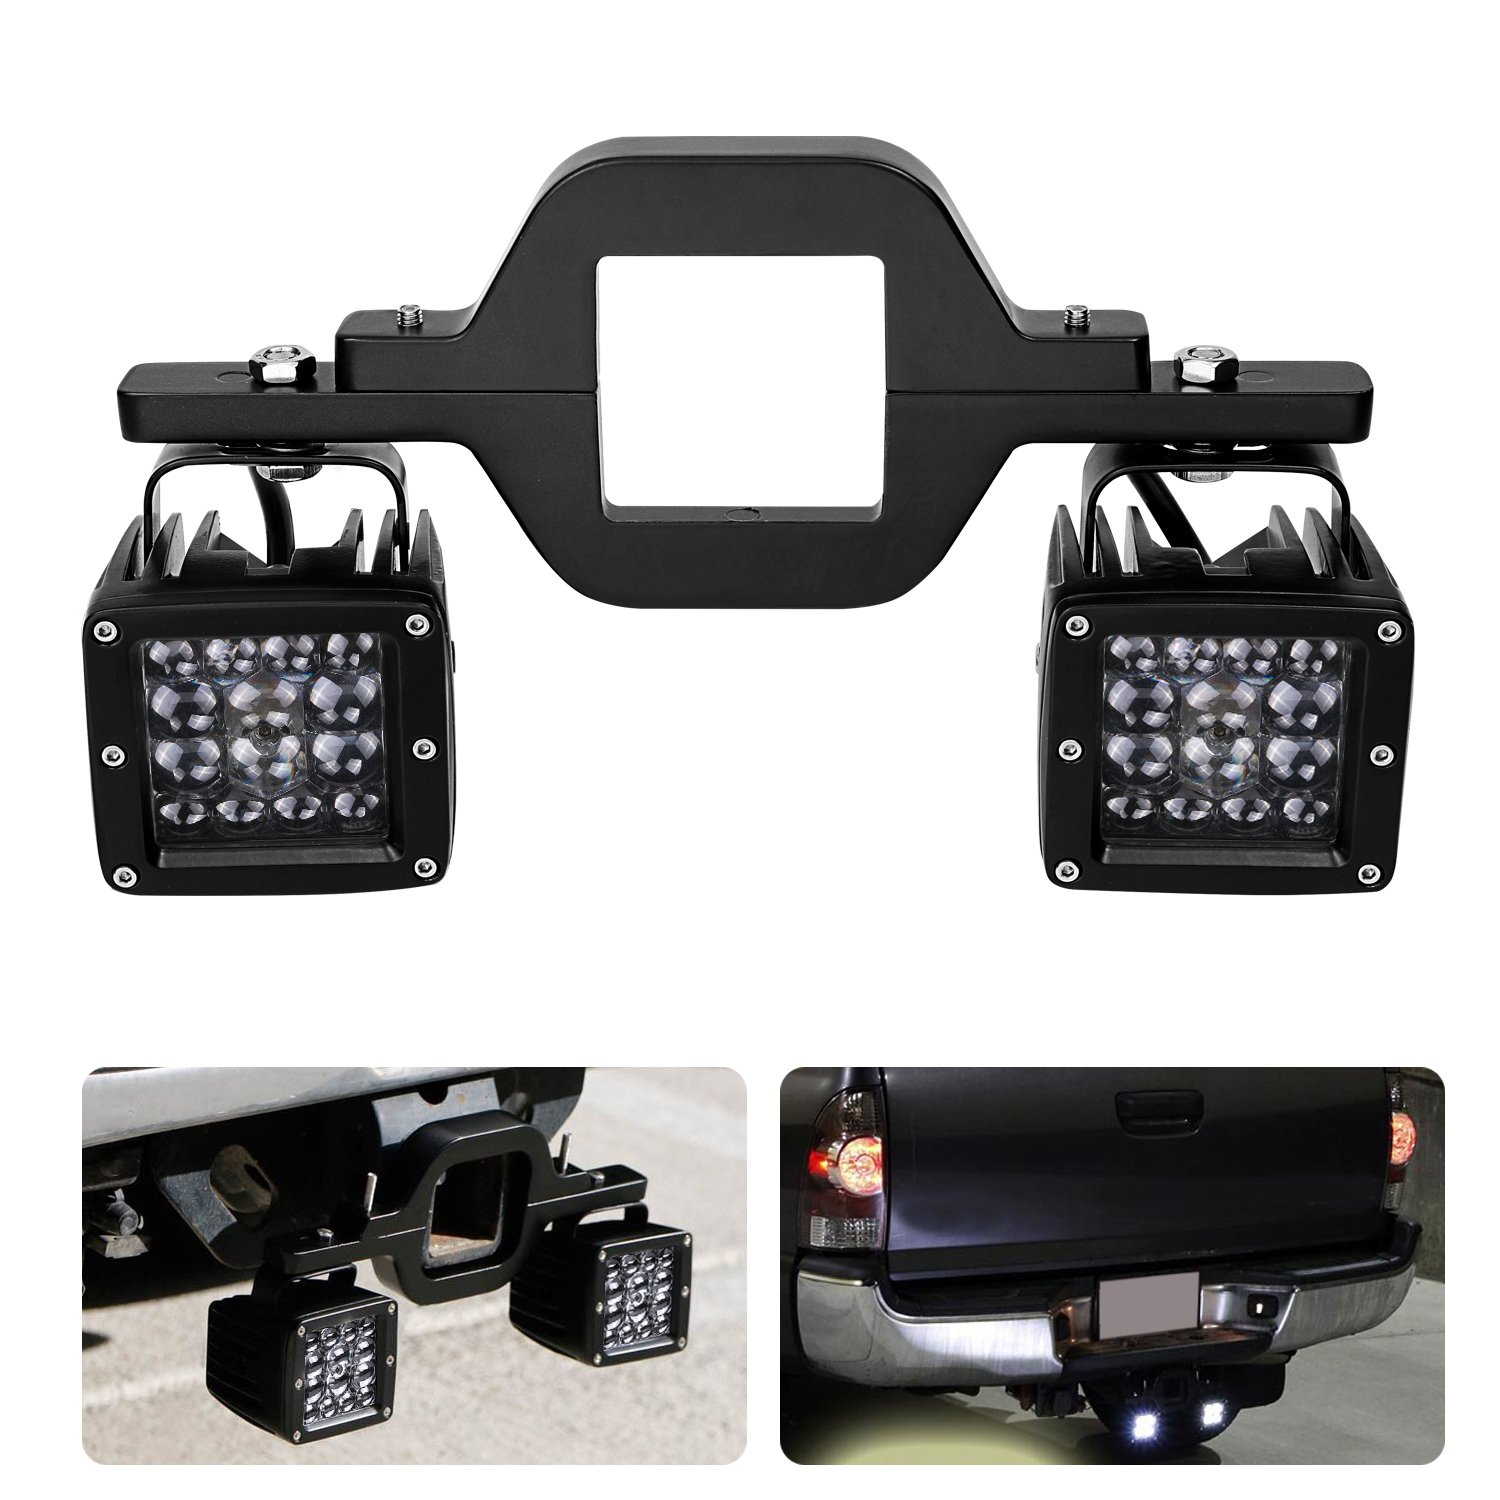 rail illegalle wrangler vs lightsled led winsome lights reverse jkjeep jeepled original light size lighting halogen backup